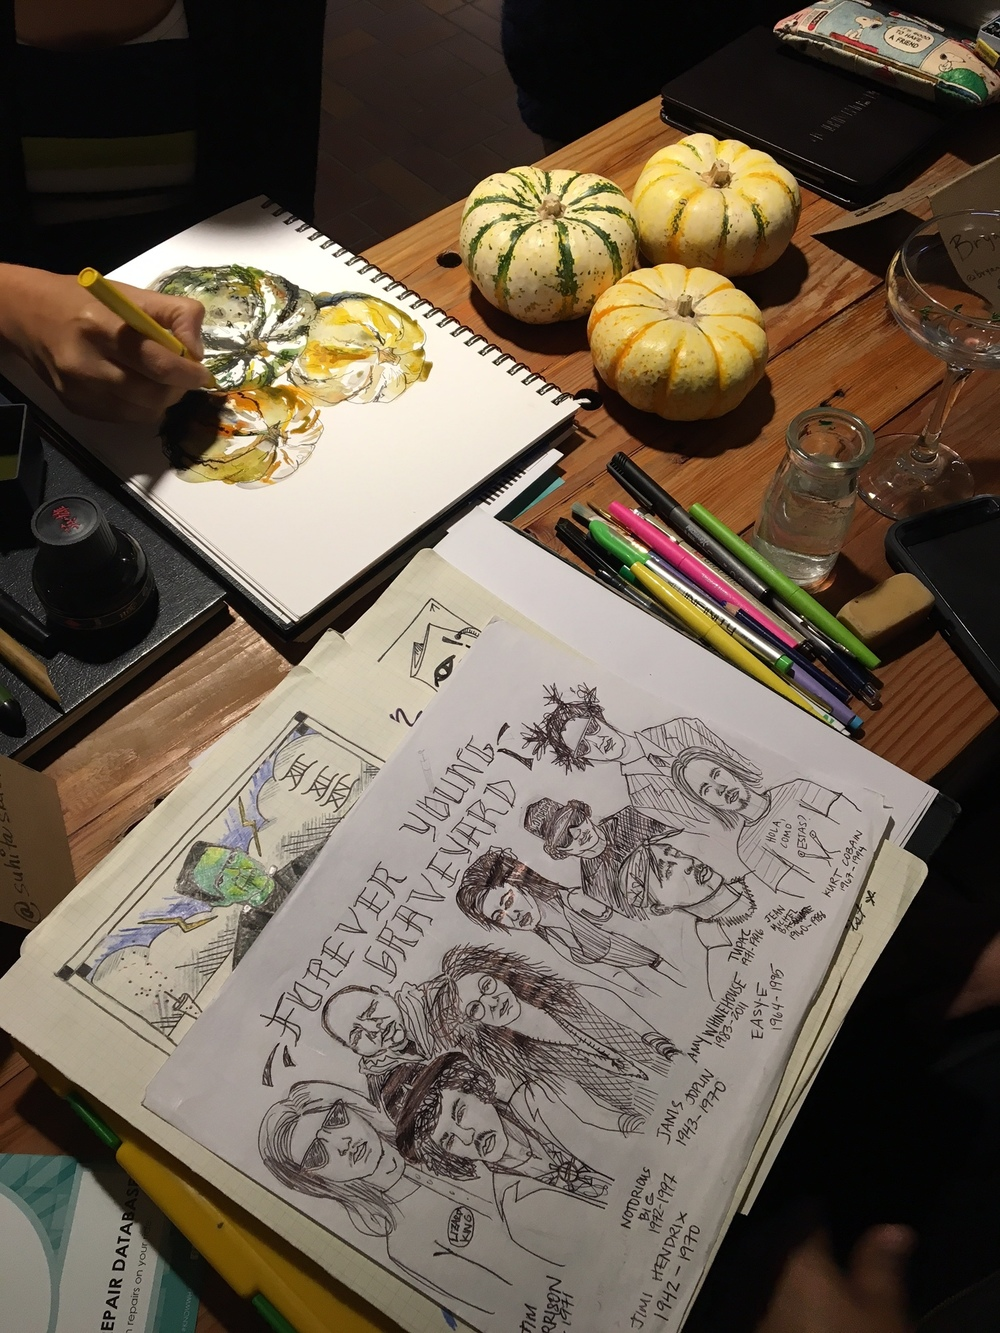 Anabella's halloween-themed sketches